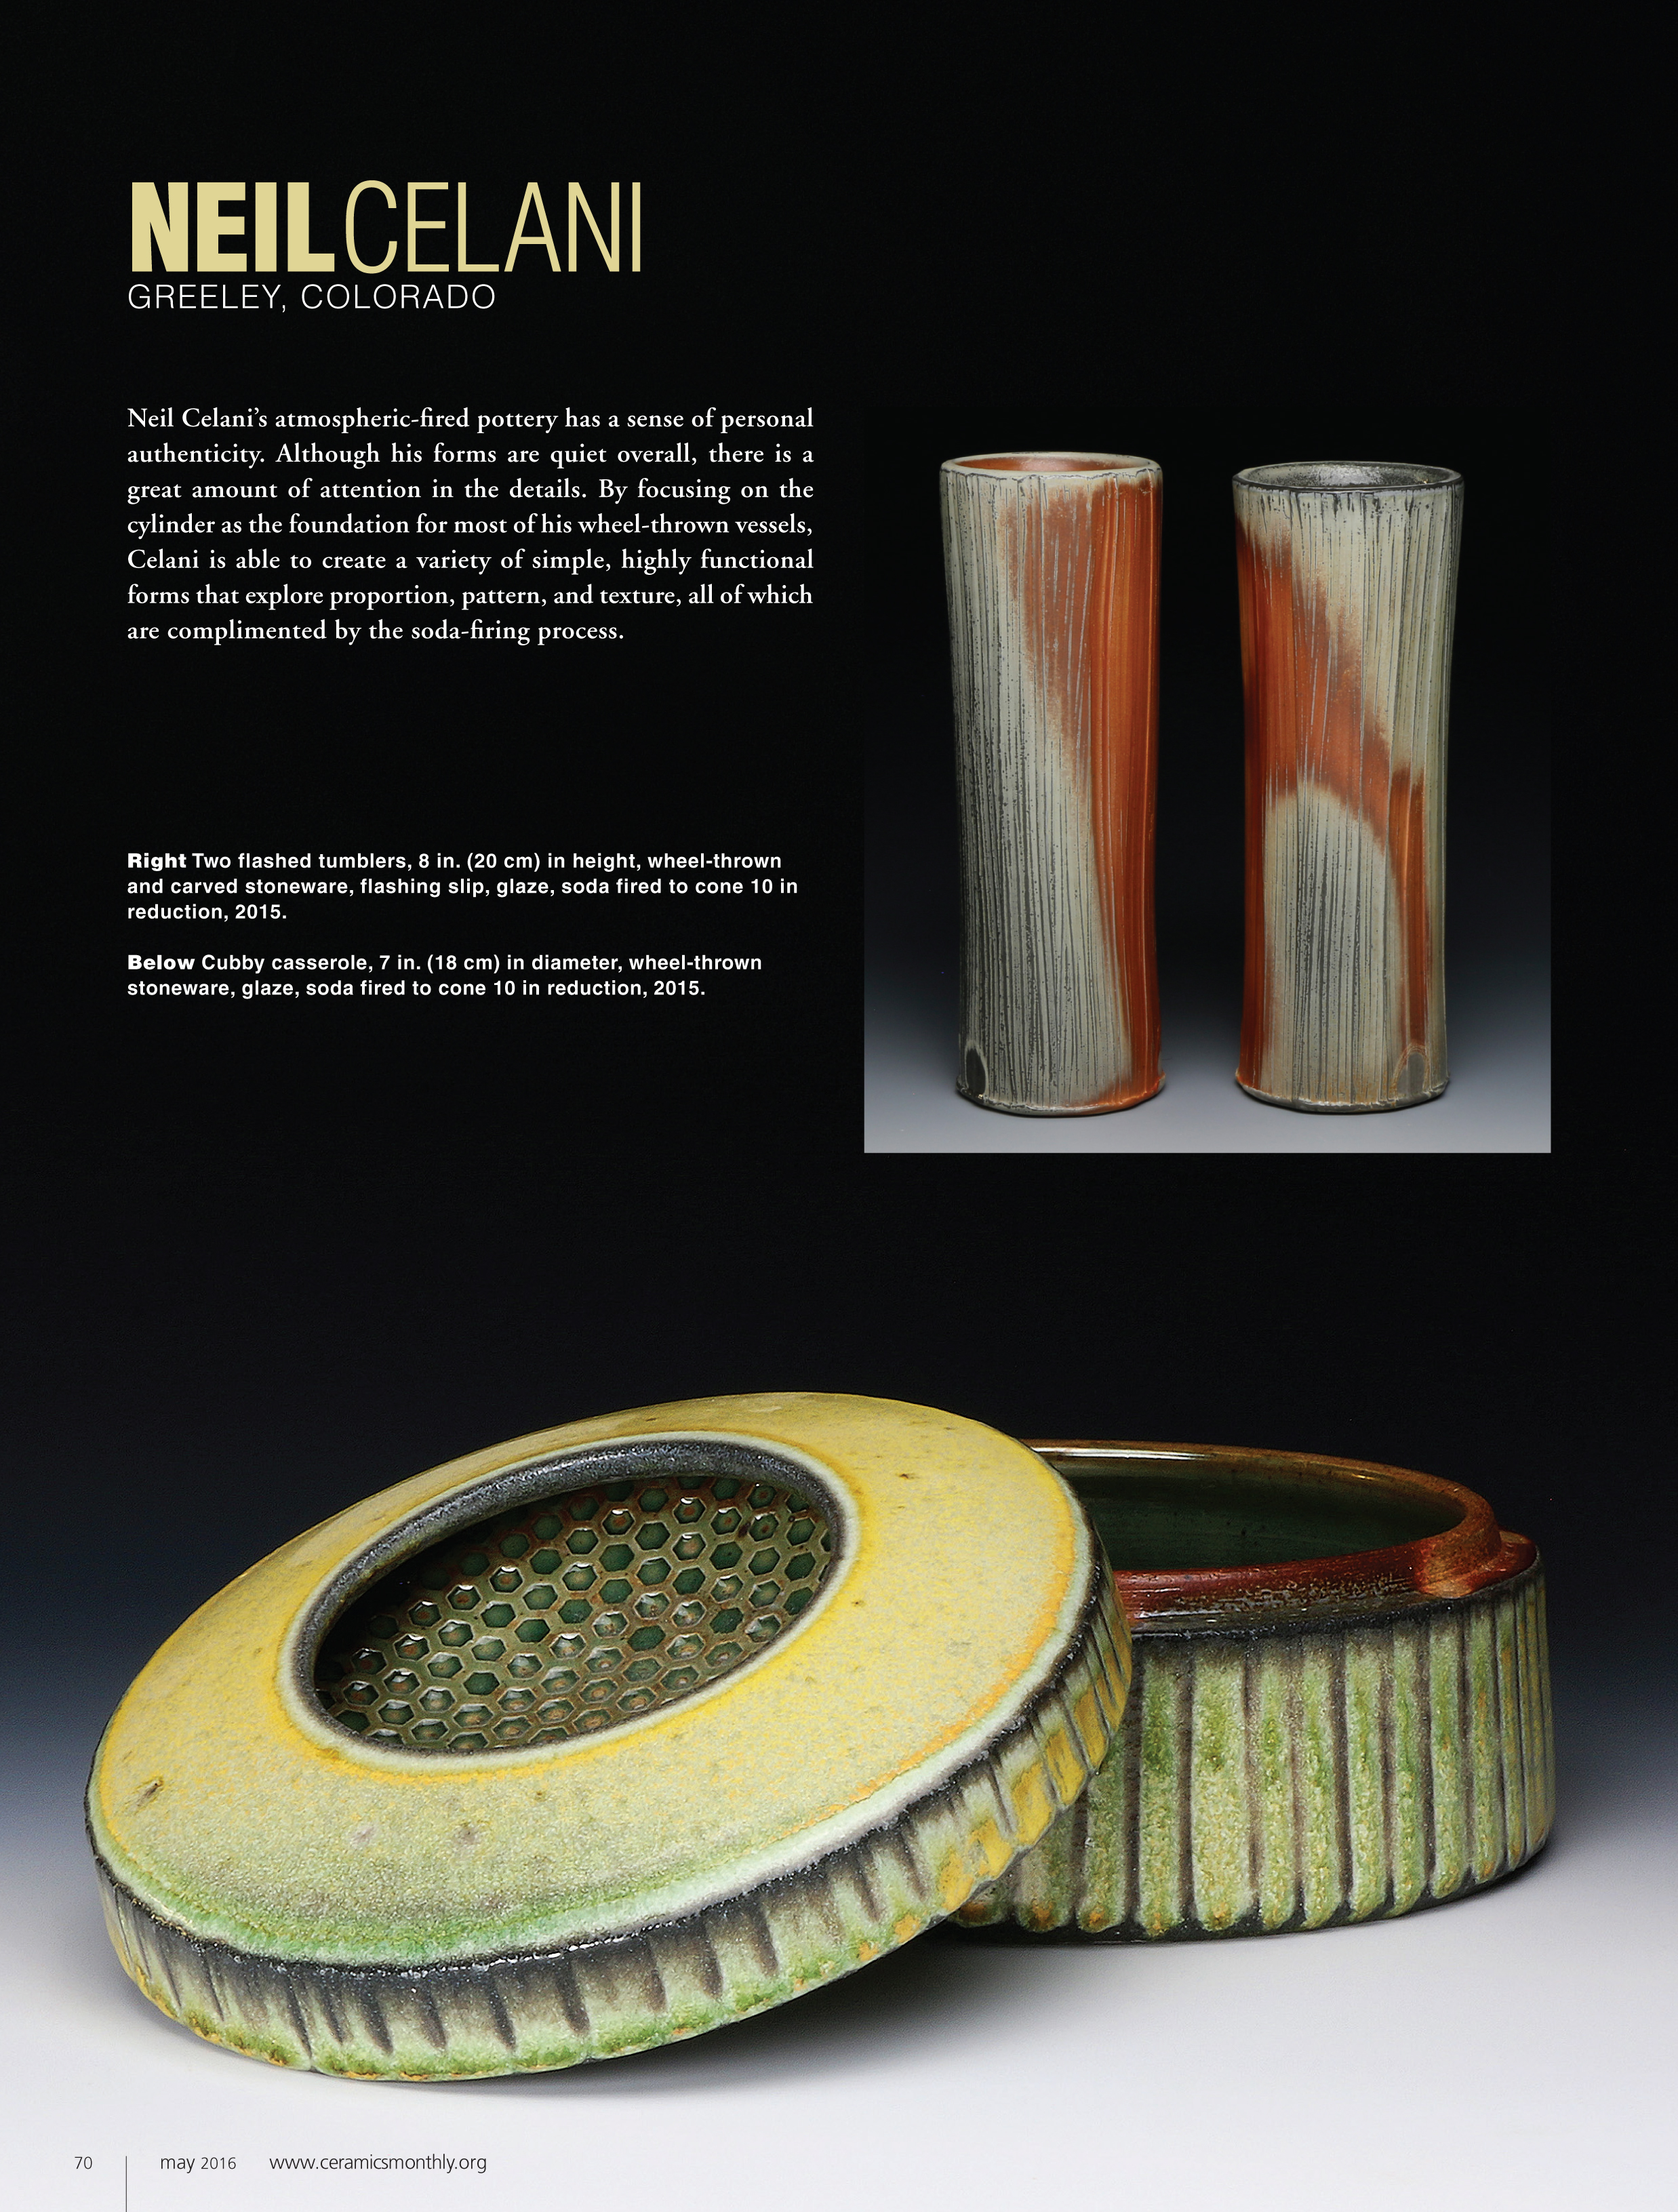 """""""Originally published in the May 2016 issue of Ceramics Monthly, page 70    . http://www.ceramicsmonthly.org . Copyright, The American Ceramic Society. Reprinted with permission.    """""""